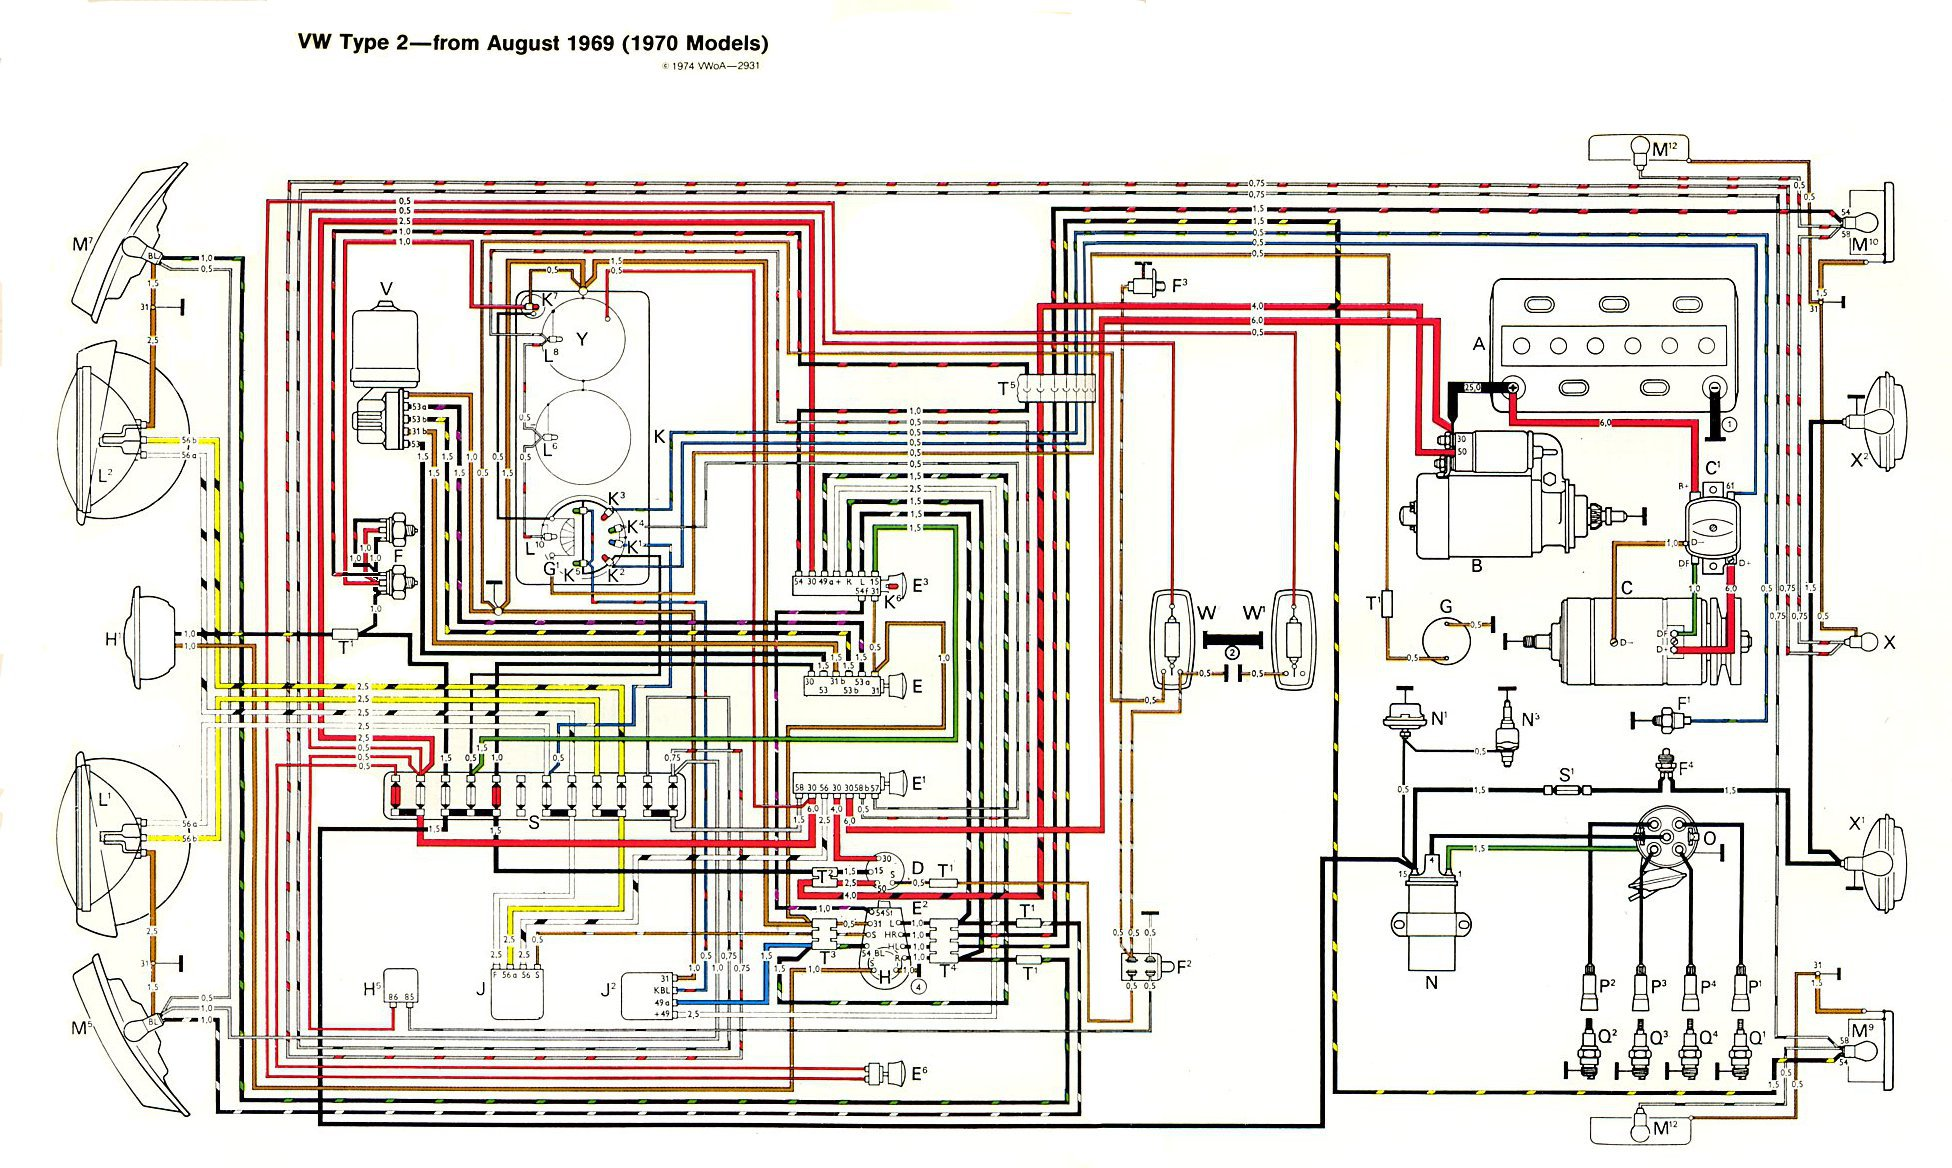 baybus_70 thesamba com type 2 wiring diagrams 1971 vw bus wiring diagram at nearapp.co